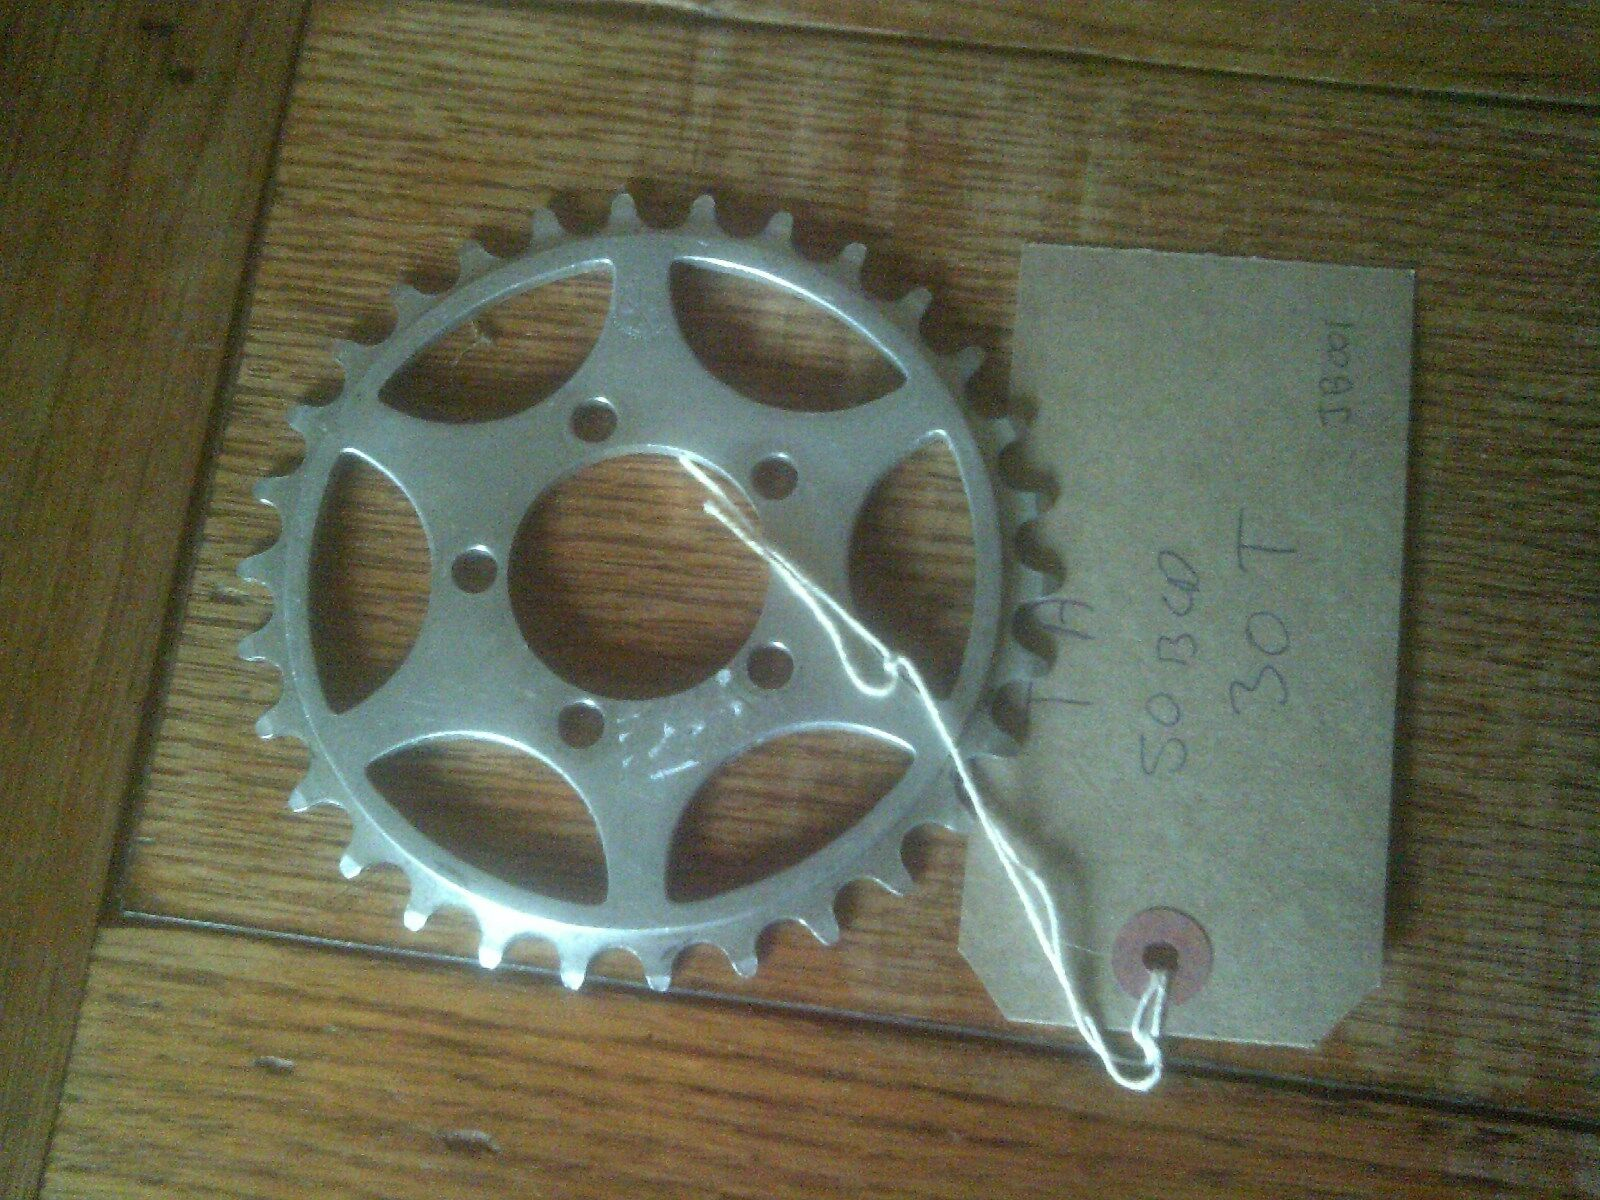 30 TOOTH  TA   50BCD  3 32  CHAINRING  high quality genuine